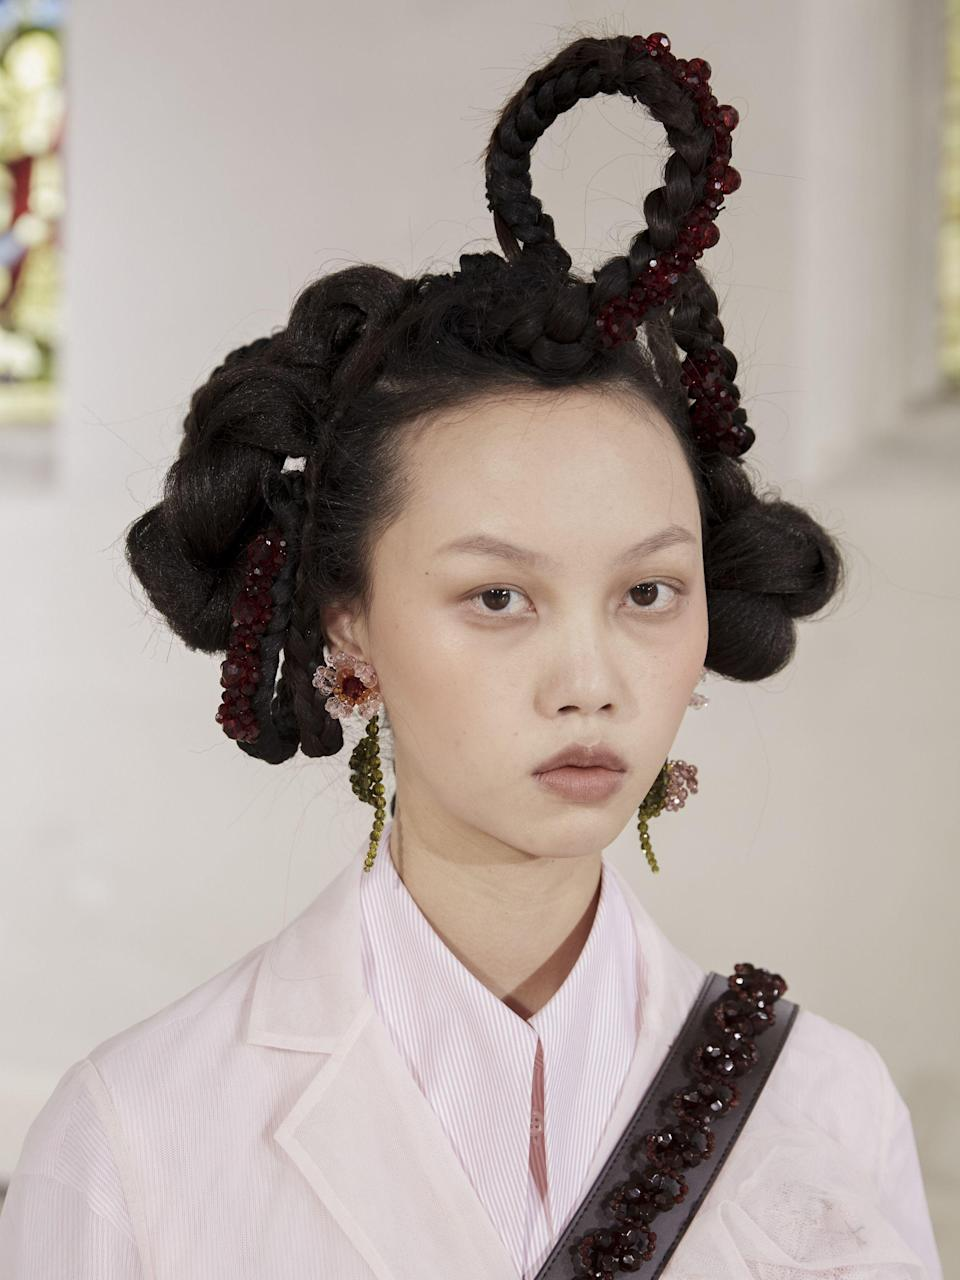 """<p>Whether it's elaborate embellished updos, an 80s perm revival or the fash crowd's go-to 'I woke up like this' hair, fashion month is the place to get all your hair inspiration for next season.</p><p>From Chanel and Fendi, to Simone Rocha and Molly Goddard, check out the best backstage <a href=""""https://www.elle.com/uk/beauty/hair/g32408/hairstyle-trends/"""" rel=""""nofollow noopener"""" target=""""_blank"""" data-ylk=""""slk:hairstyles and trends"""" class=""""link rapid-noclick-resp"""">hairstyles and trends</a> from fashion week AW21, right here.</p>"""